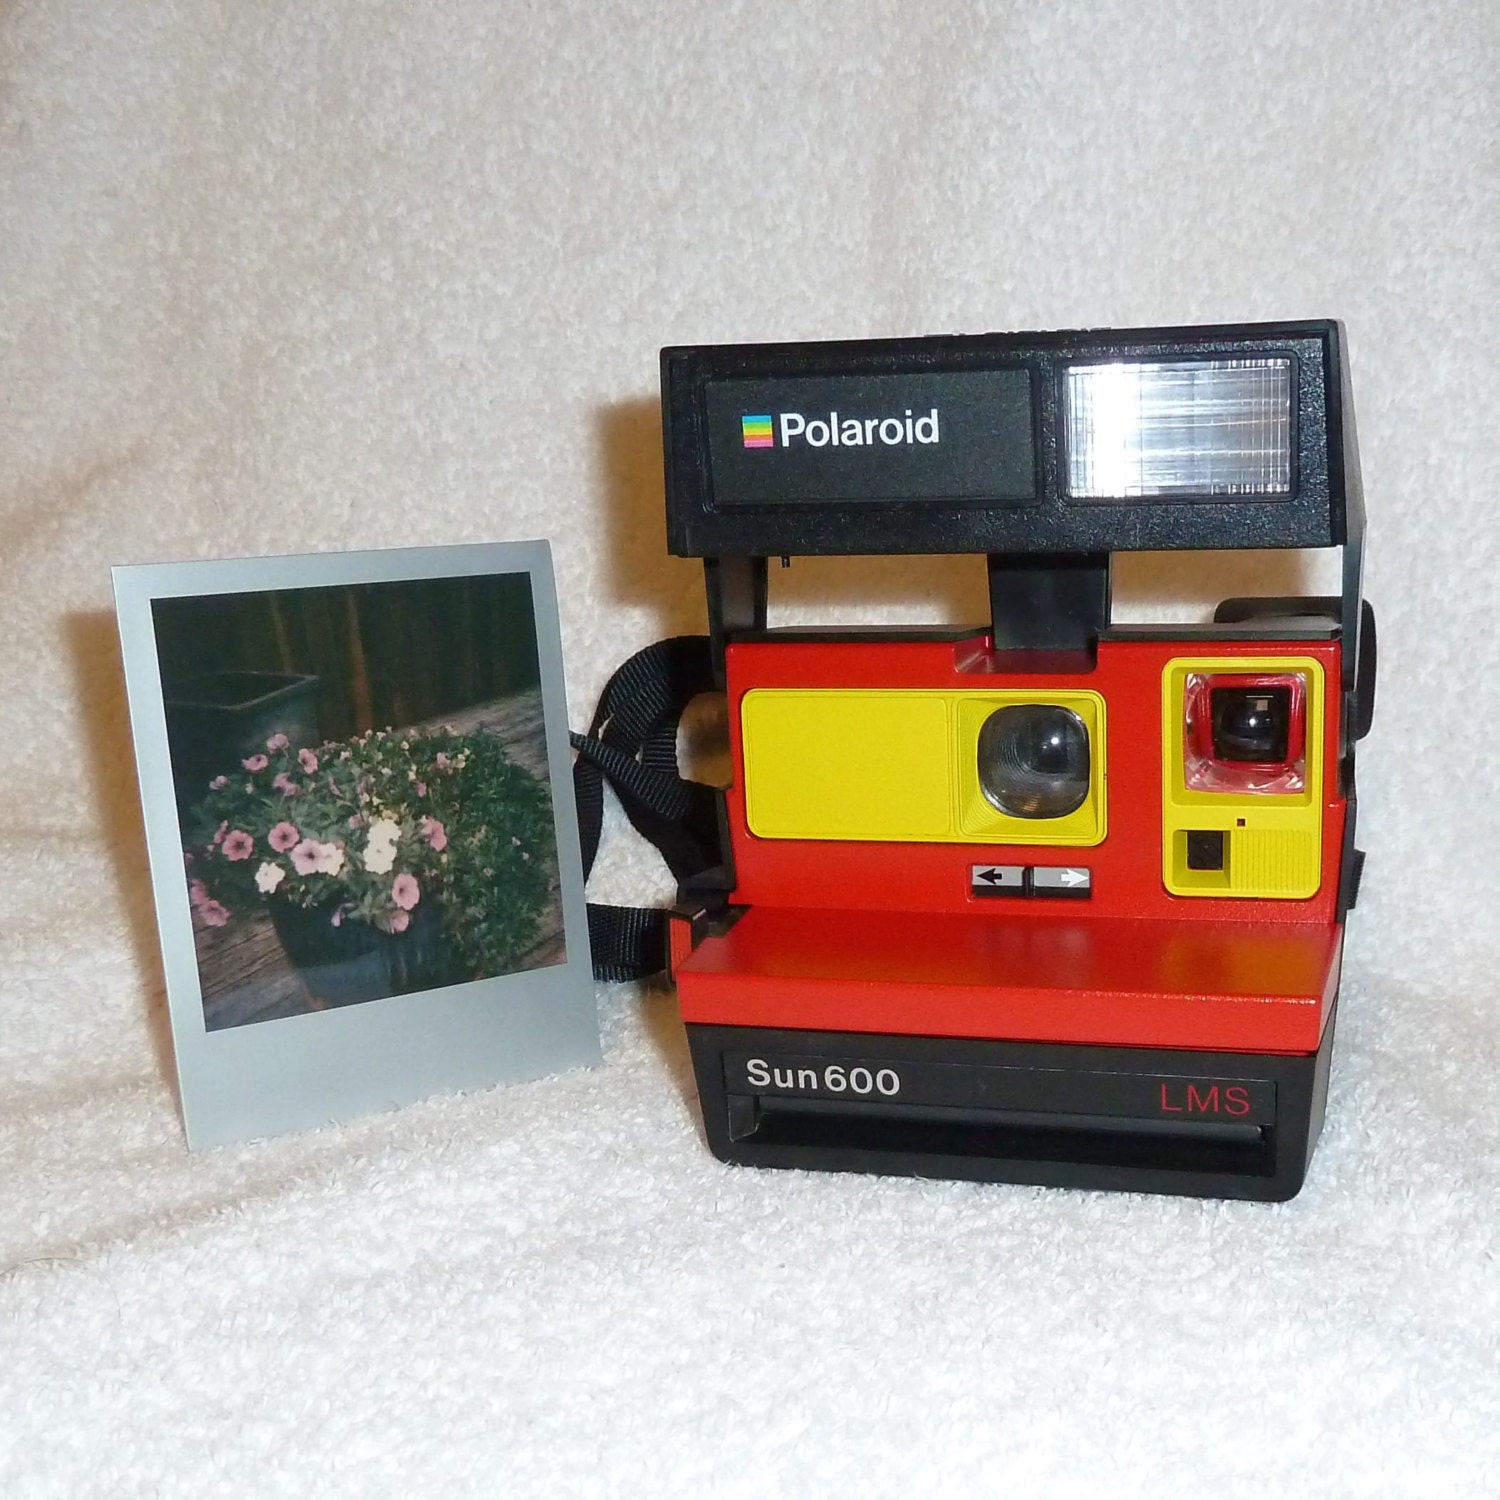 sun 600 polaroid camera ready to use upcycled with red and. Black Bedroom Furniture Sets. Home Design Ideas